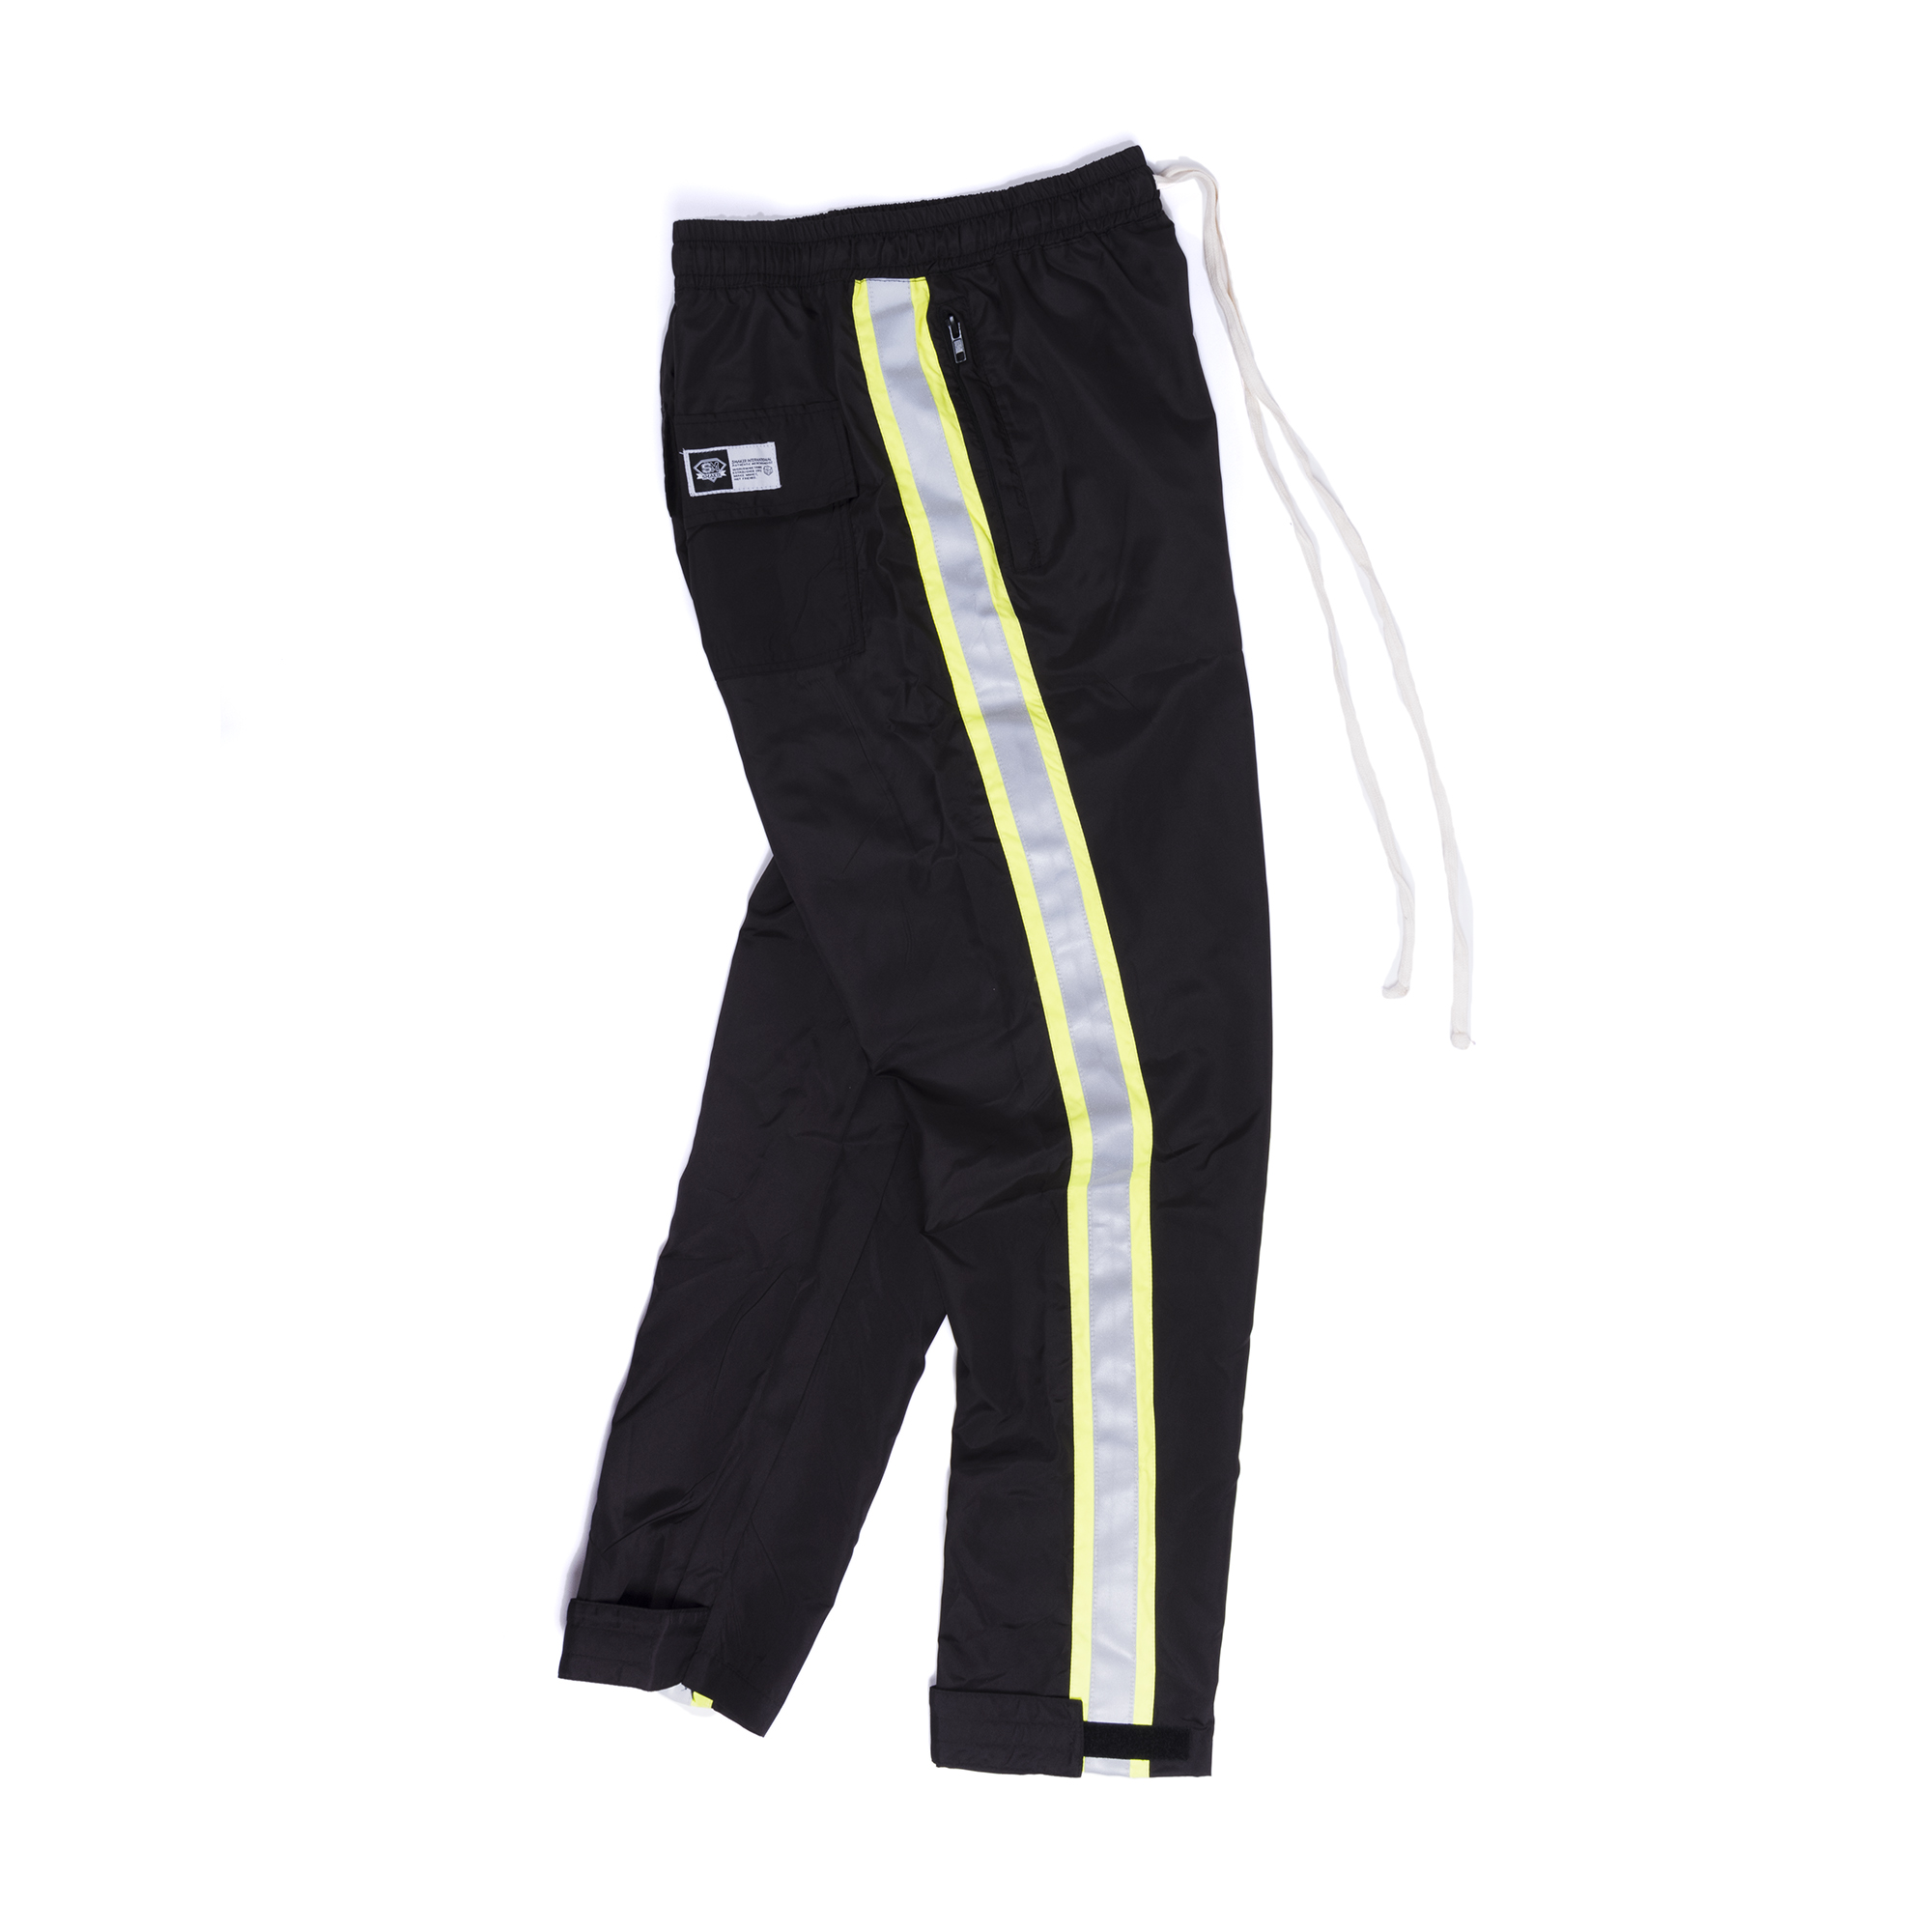 REFLECTIVE NEON STRIPED TRACK PANTS IN BLACK